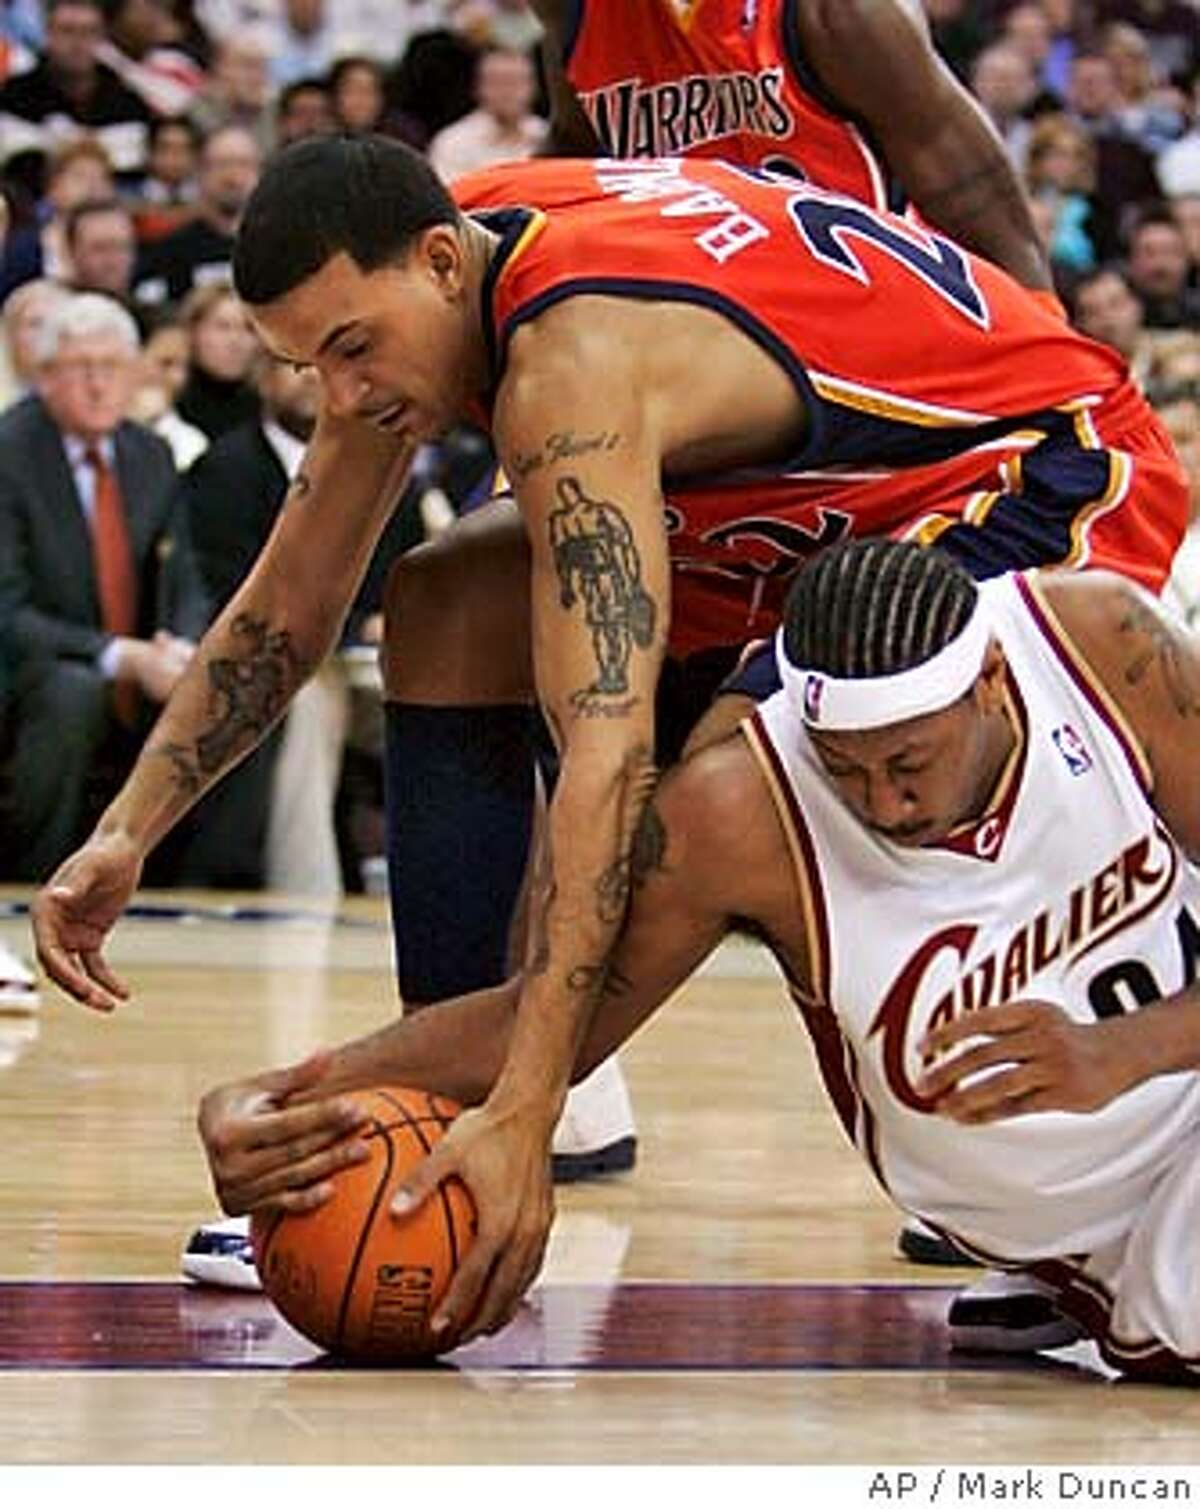 Golden State Warriors' Matt Barnes, top, fights for a loose ball with Cleveland Cavaliers' Donyell Marshall during the second quarter of an NBA basketball game Tuesday, Jan. 30, 2007, in Cleveland. (AP Photo/Mark Duncan)